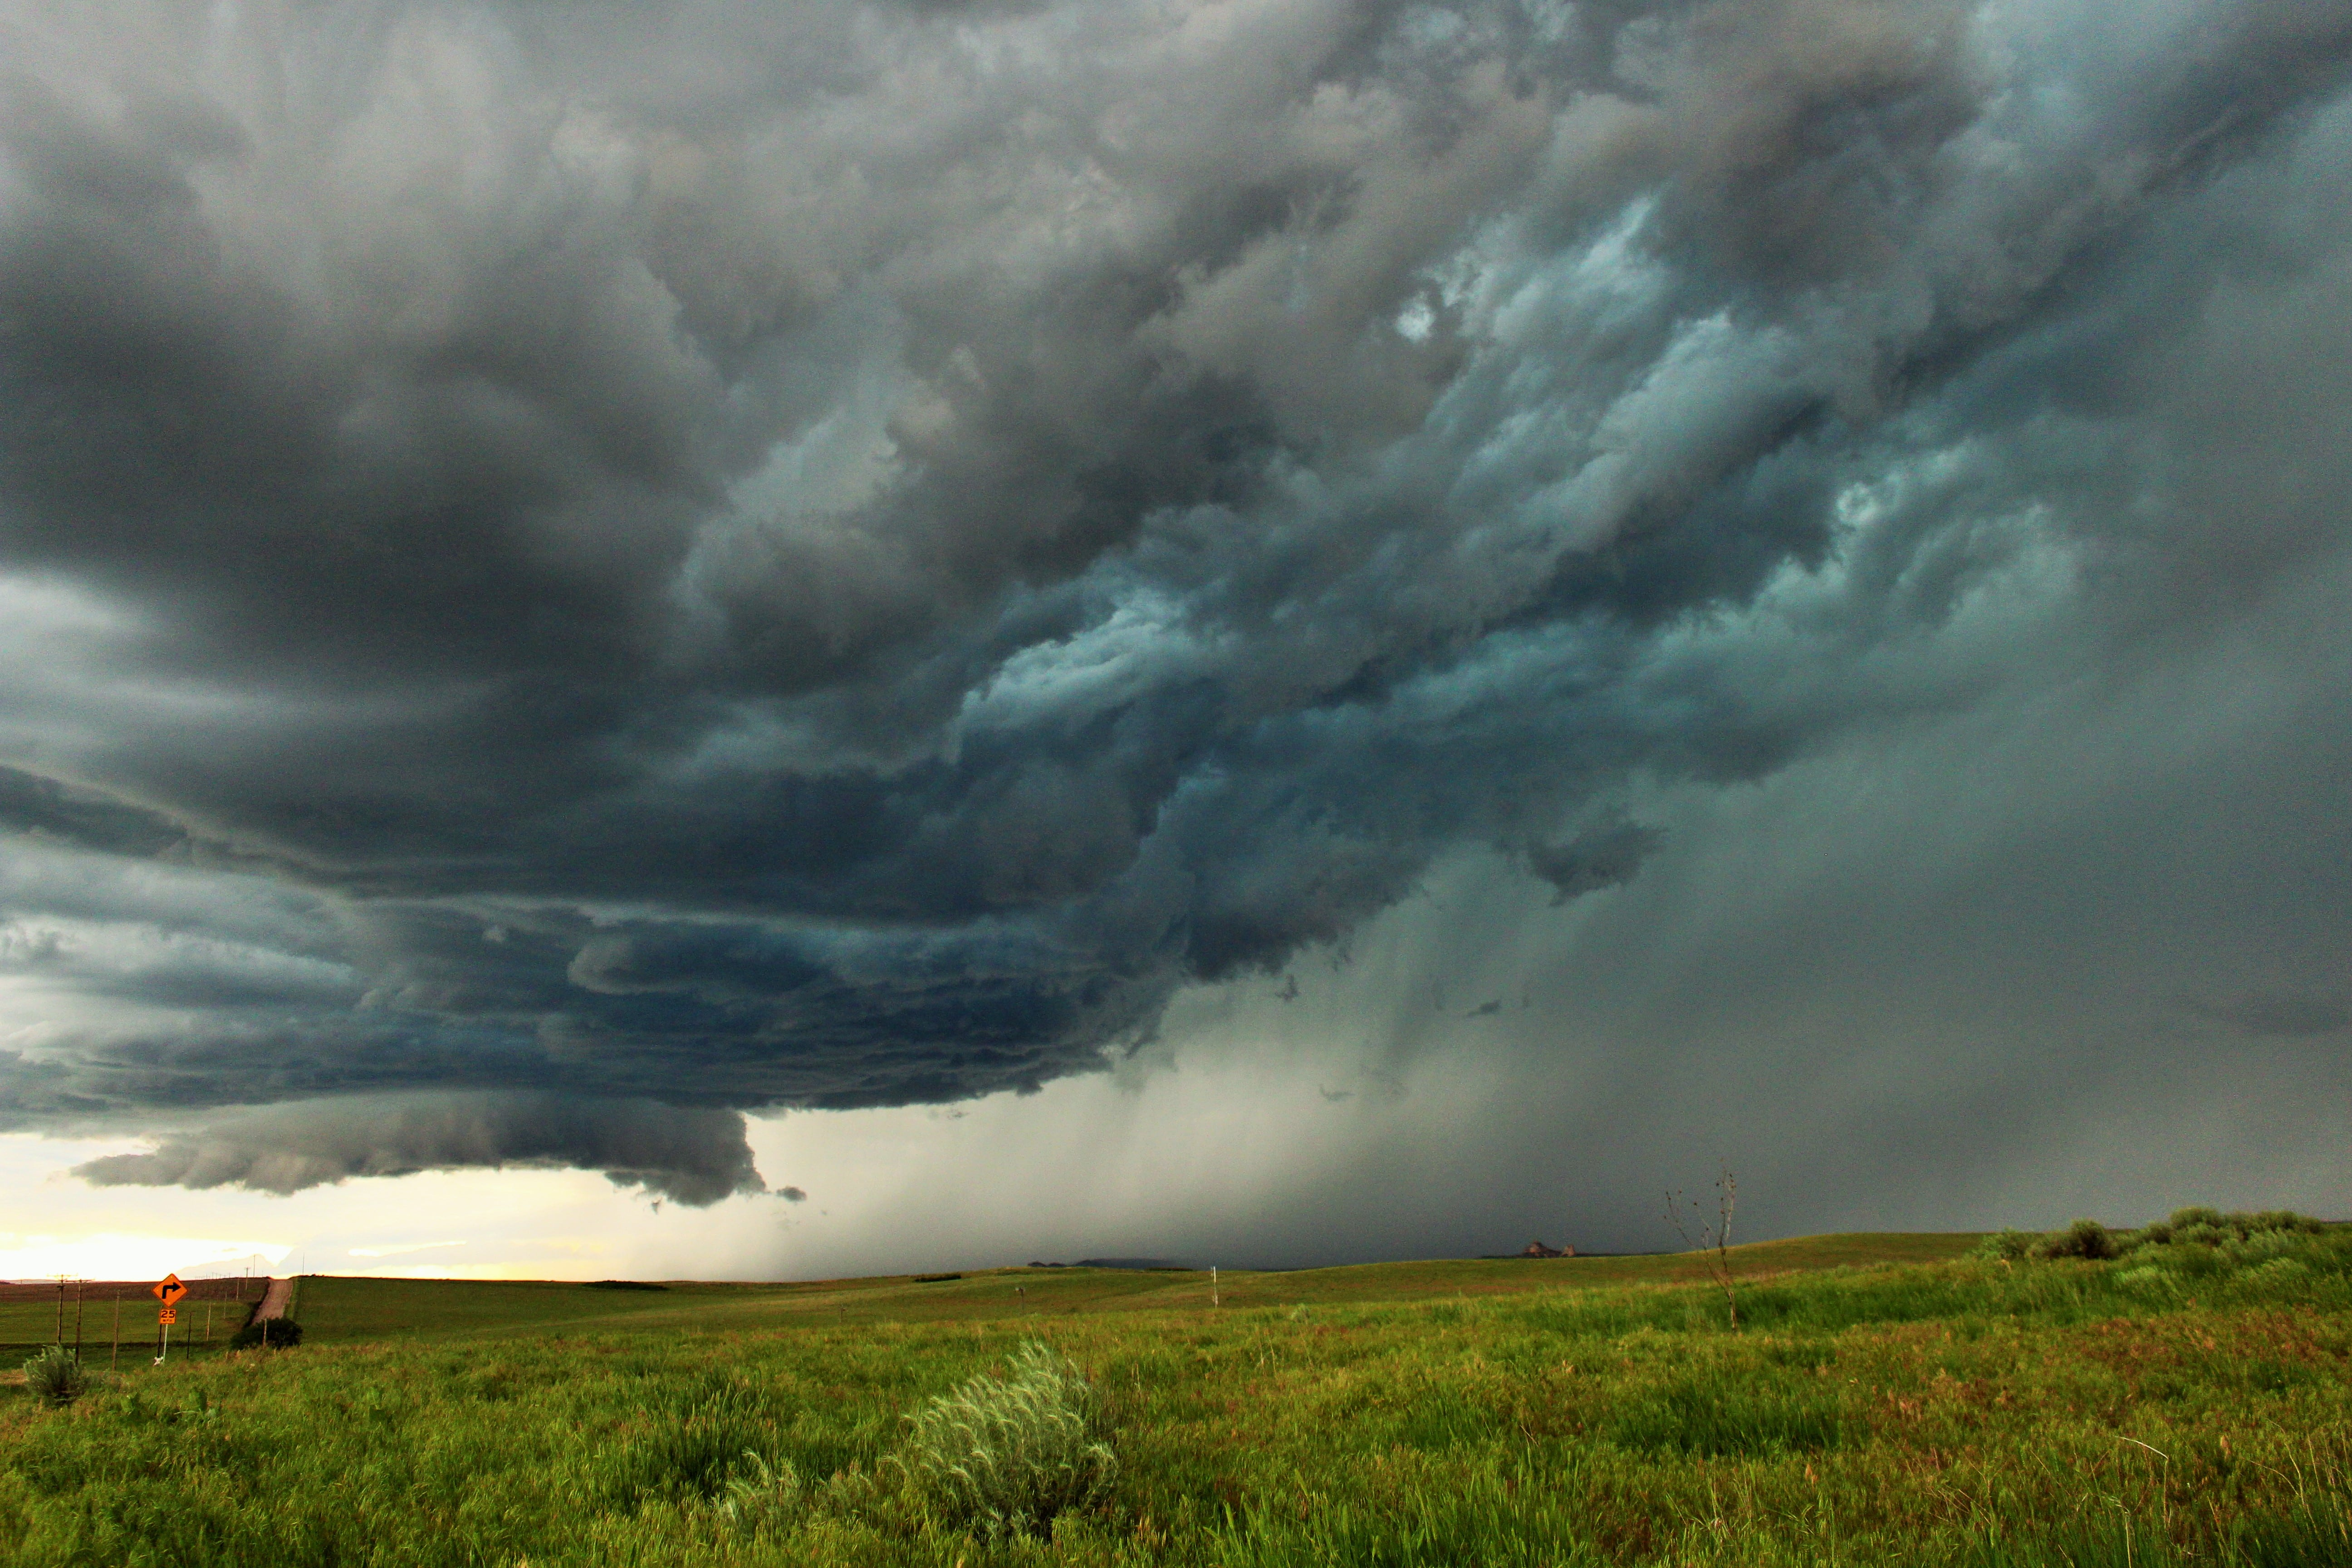 Liability Car Insurance >> Hail and high wind storms - what does insurance cover?